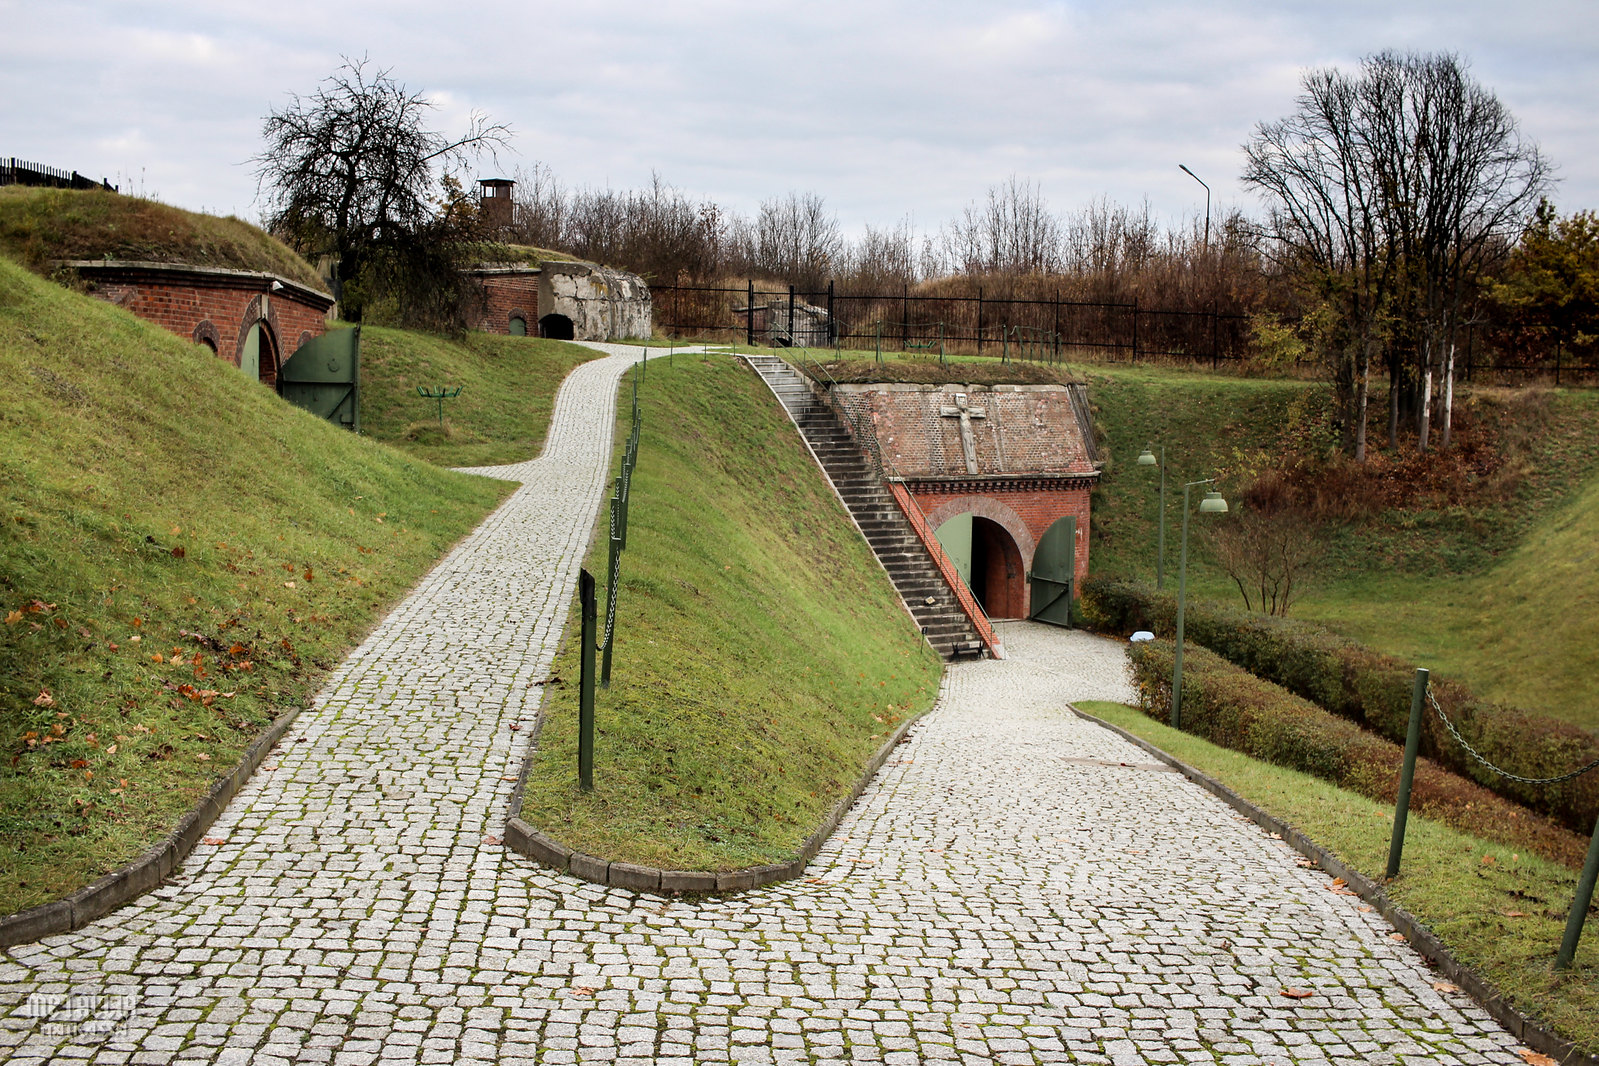 fort VII, fort 7, dark tourism, tuskaturismi, keskitysleiri, concentration camp, extermination camp, death camp, second world war, nazi concentration camp, poznan, visit poznan